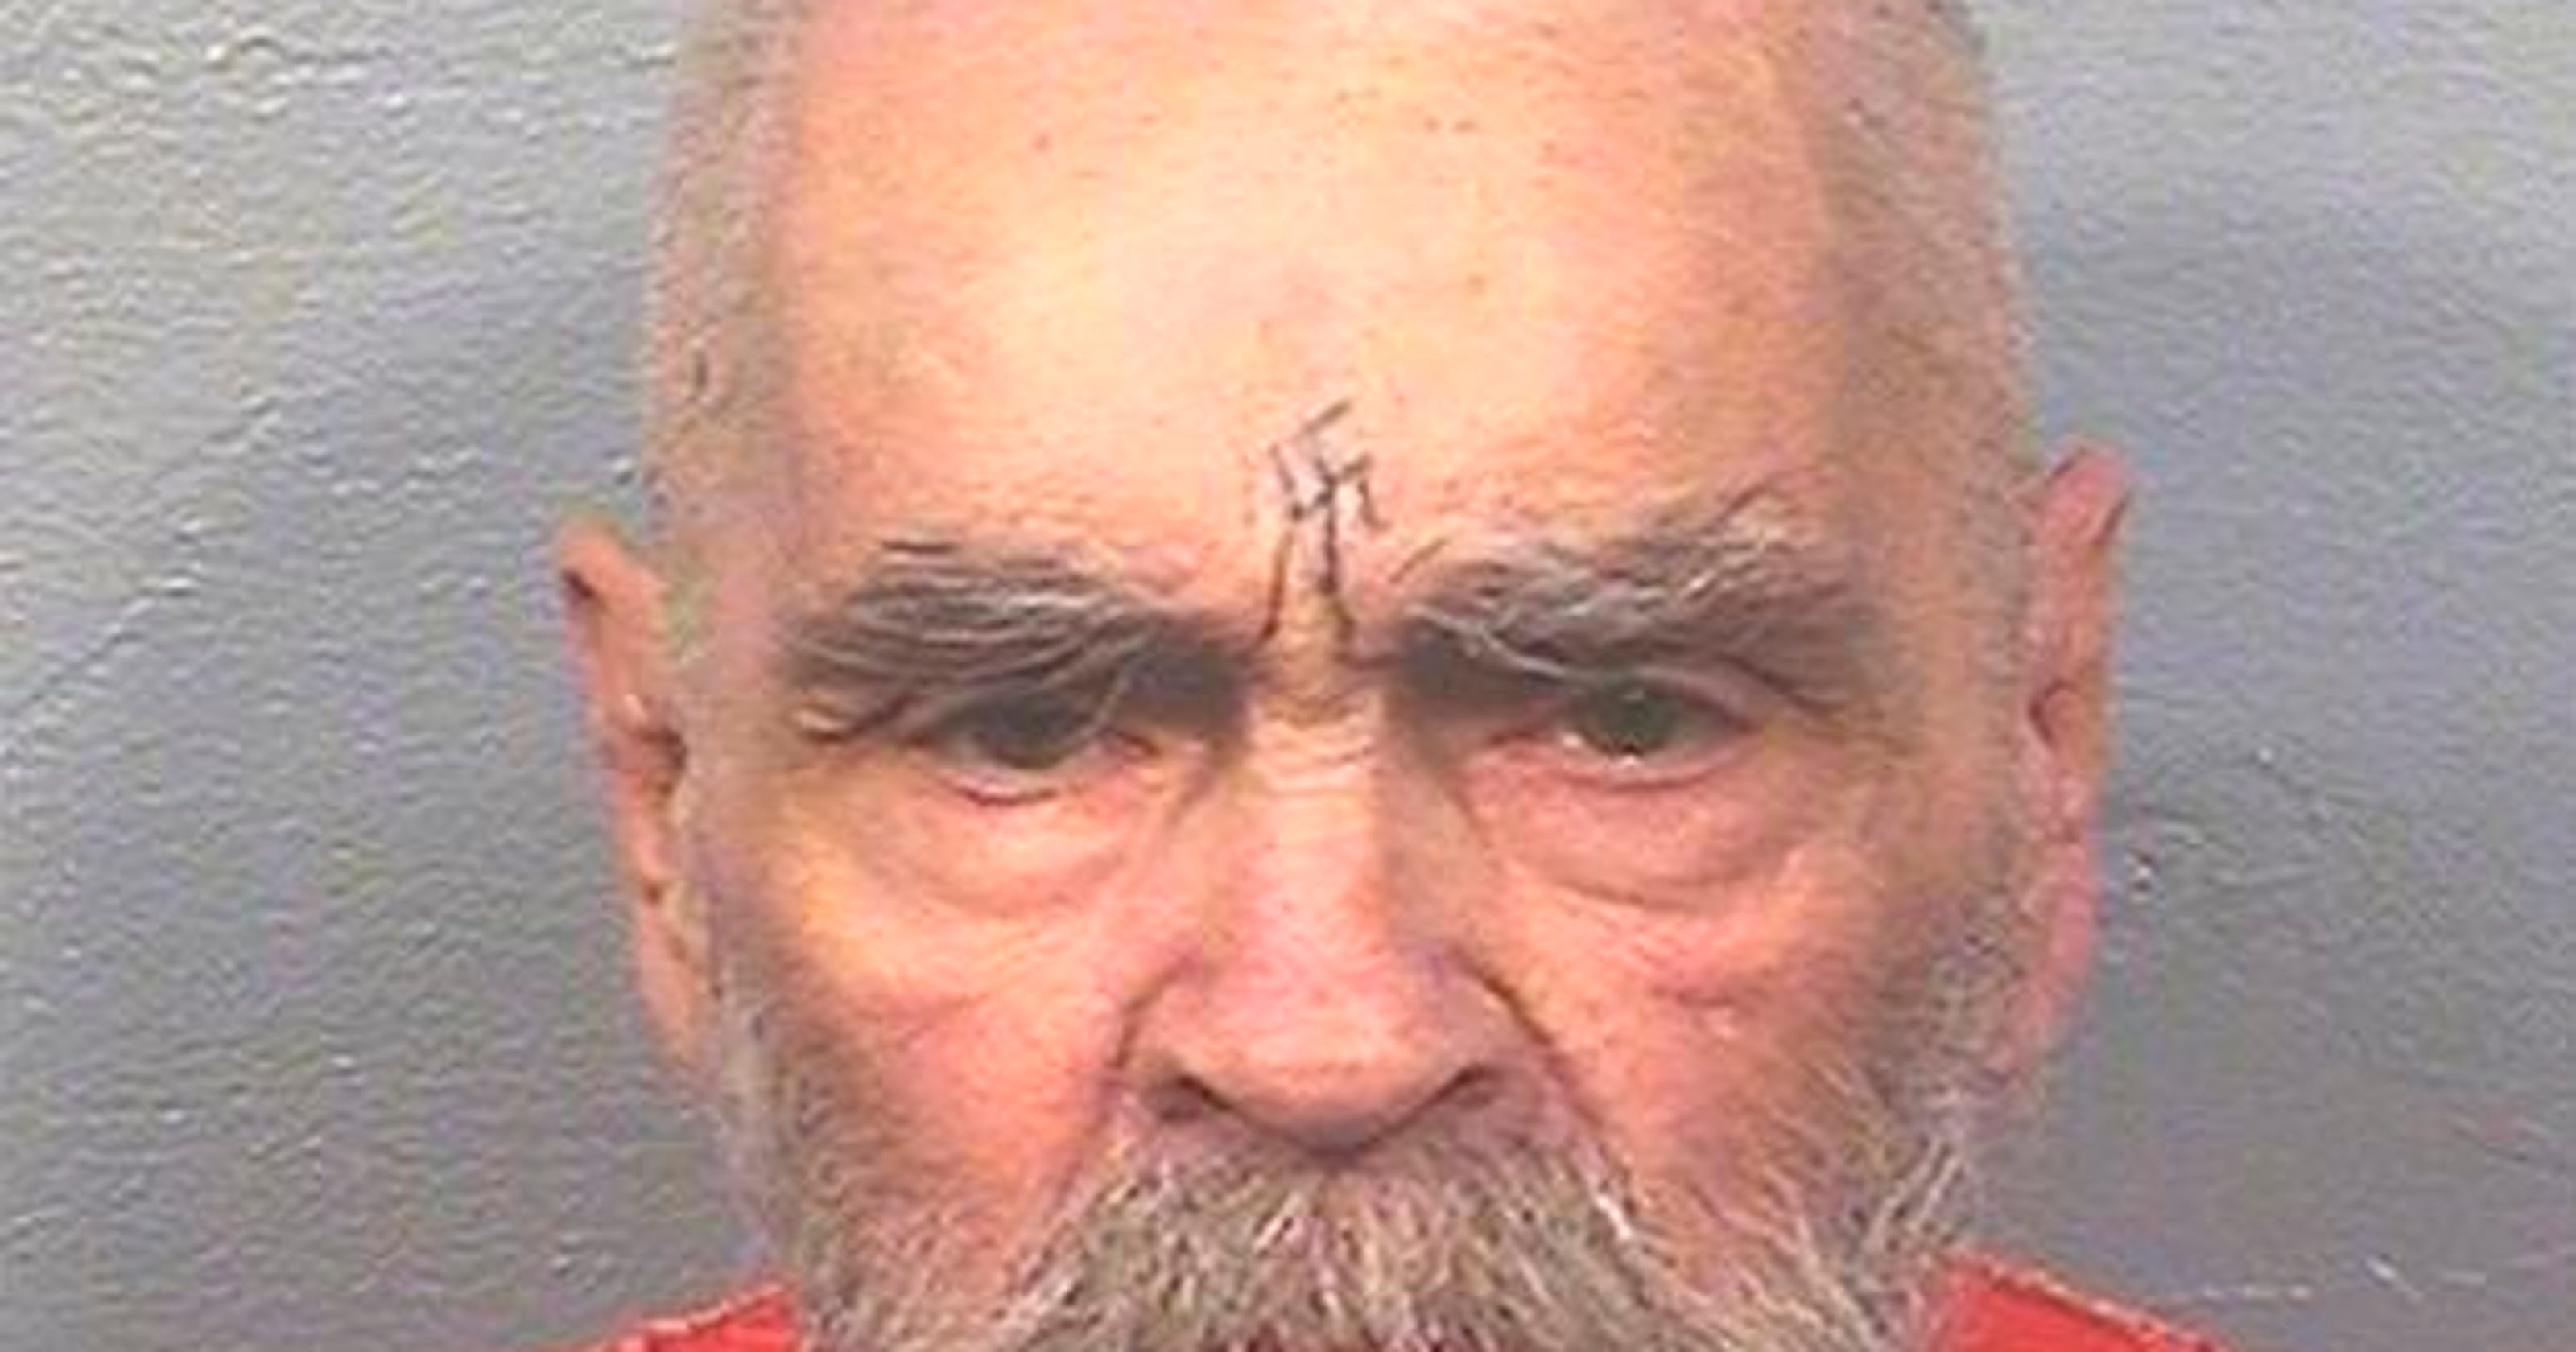 Charles Manson's mom was from Ashland, Kentucky and he'd visit